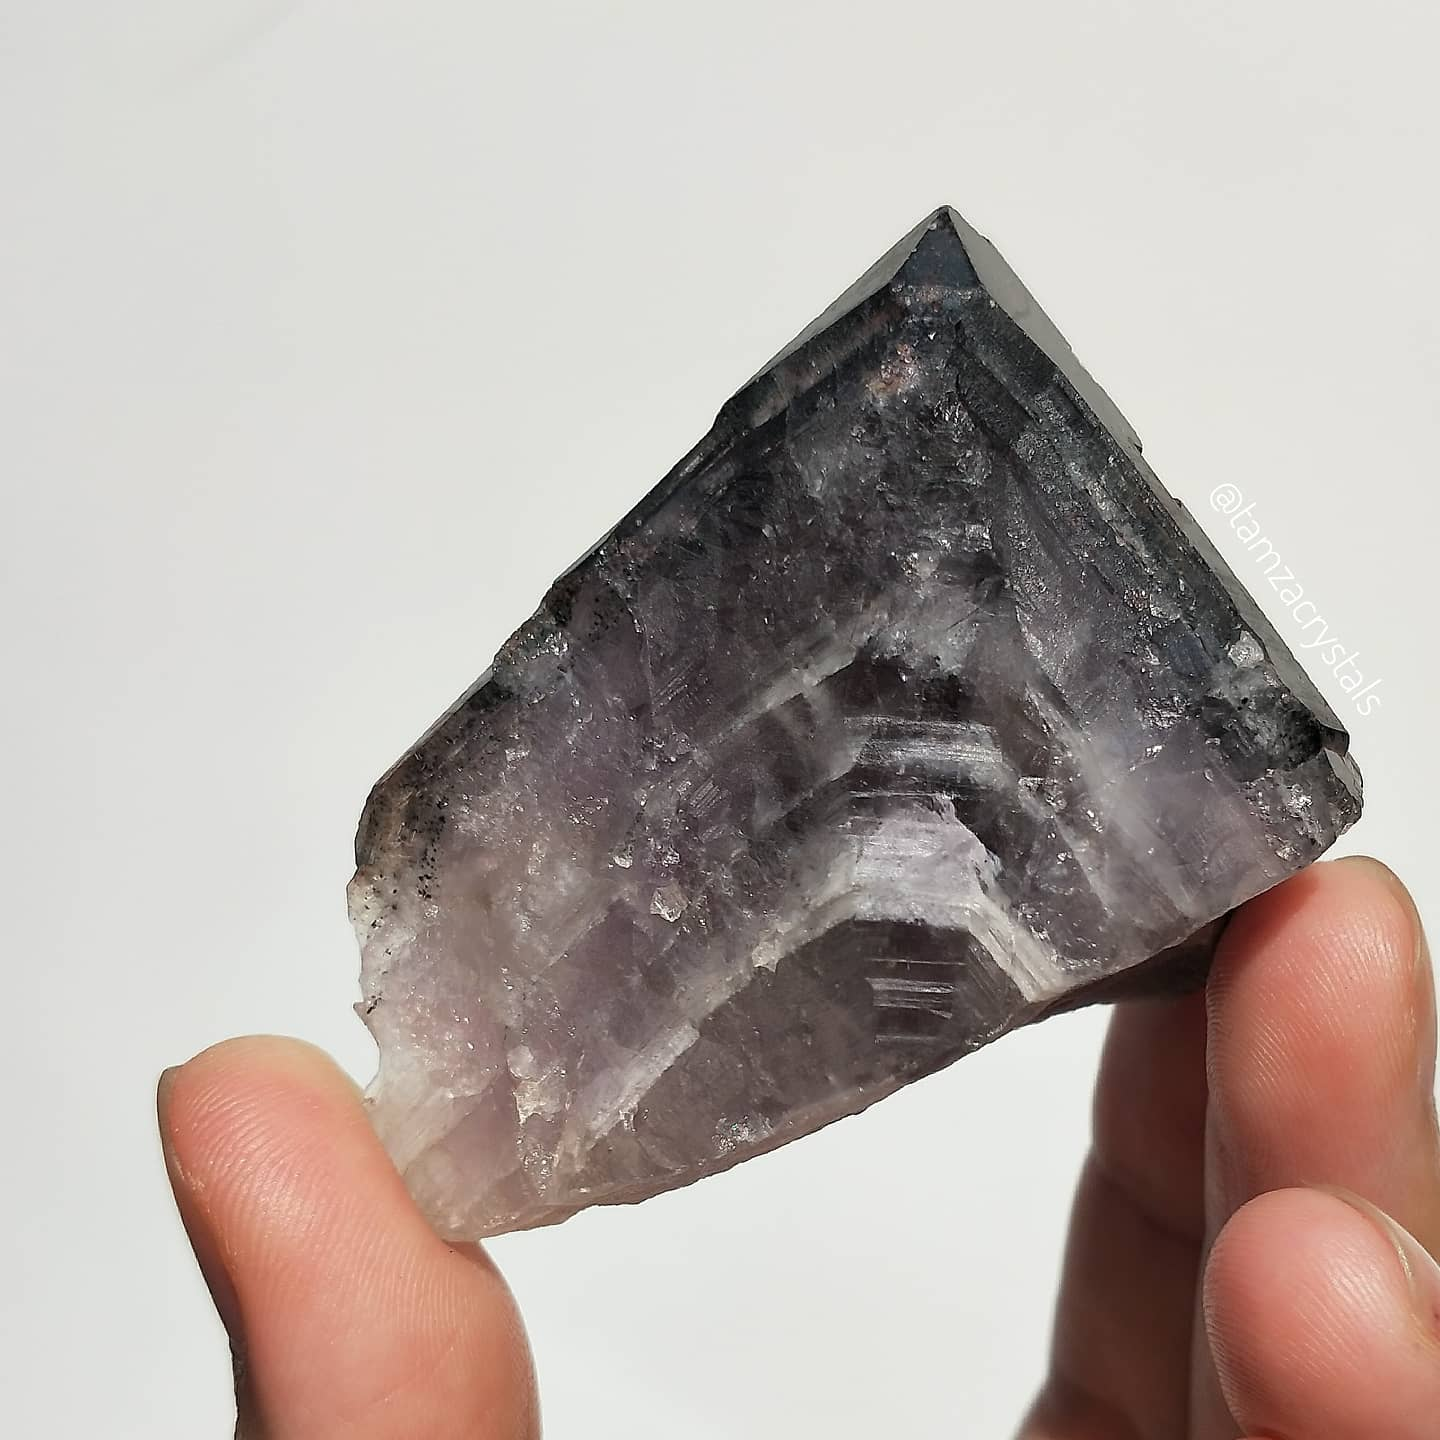 Canadian Black Tip Auralite Amethyst with Chevrons